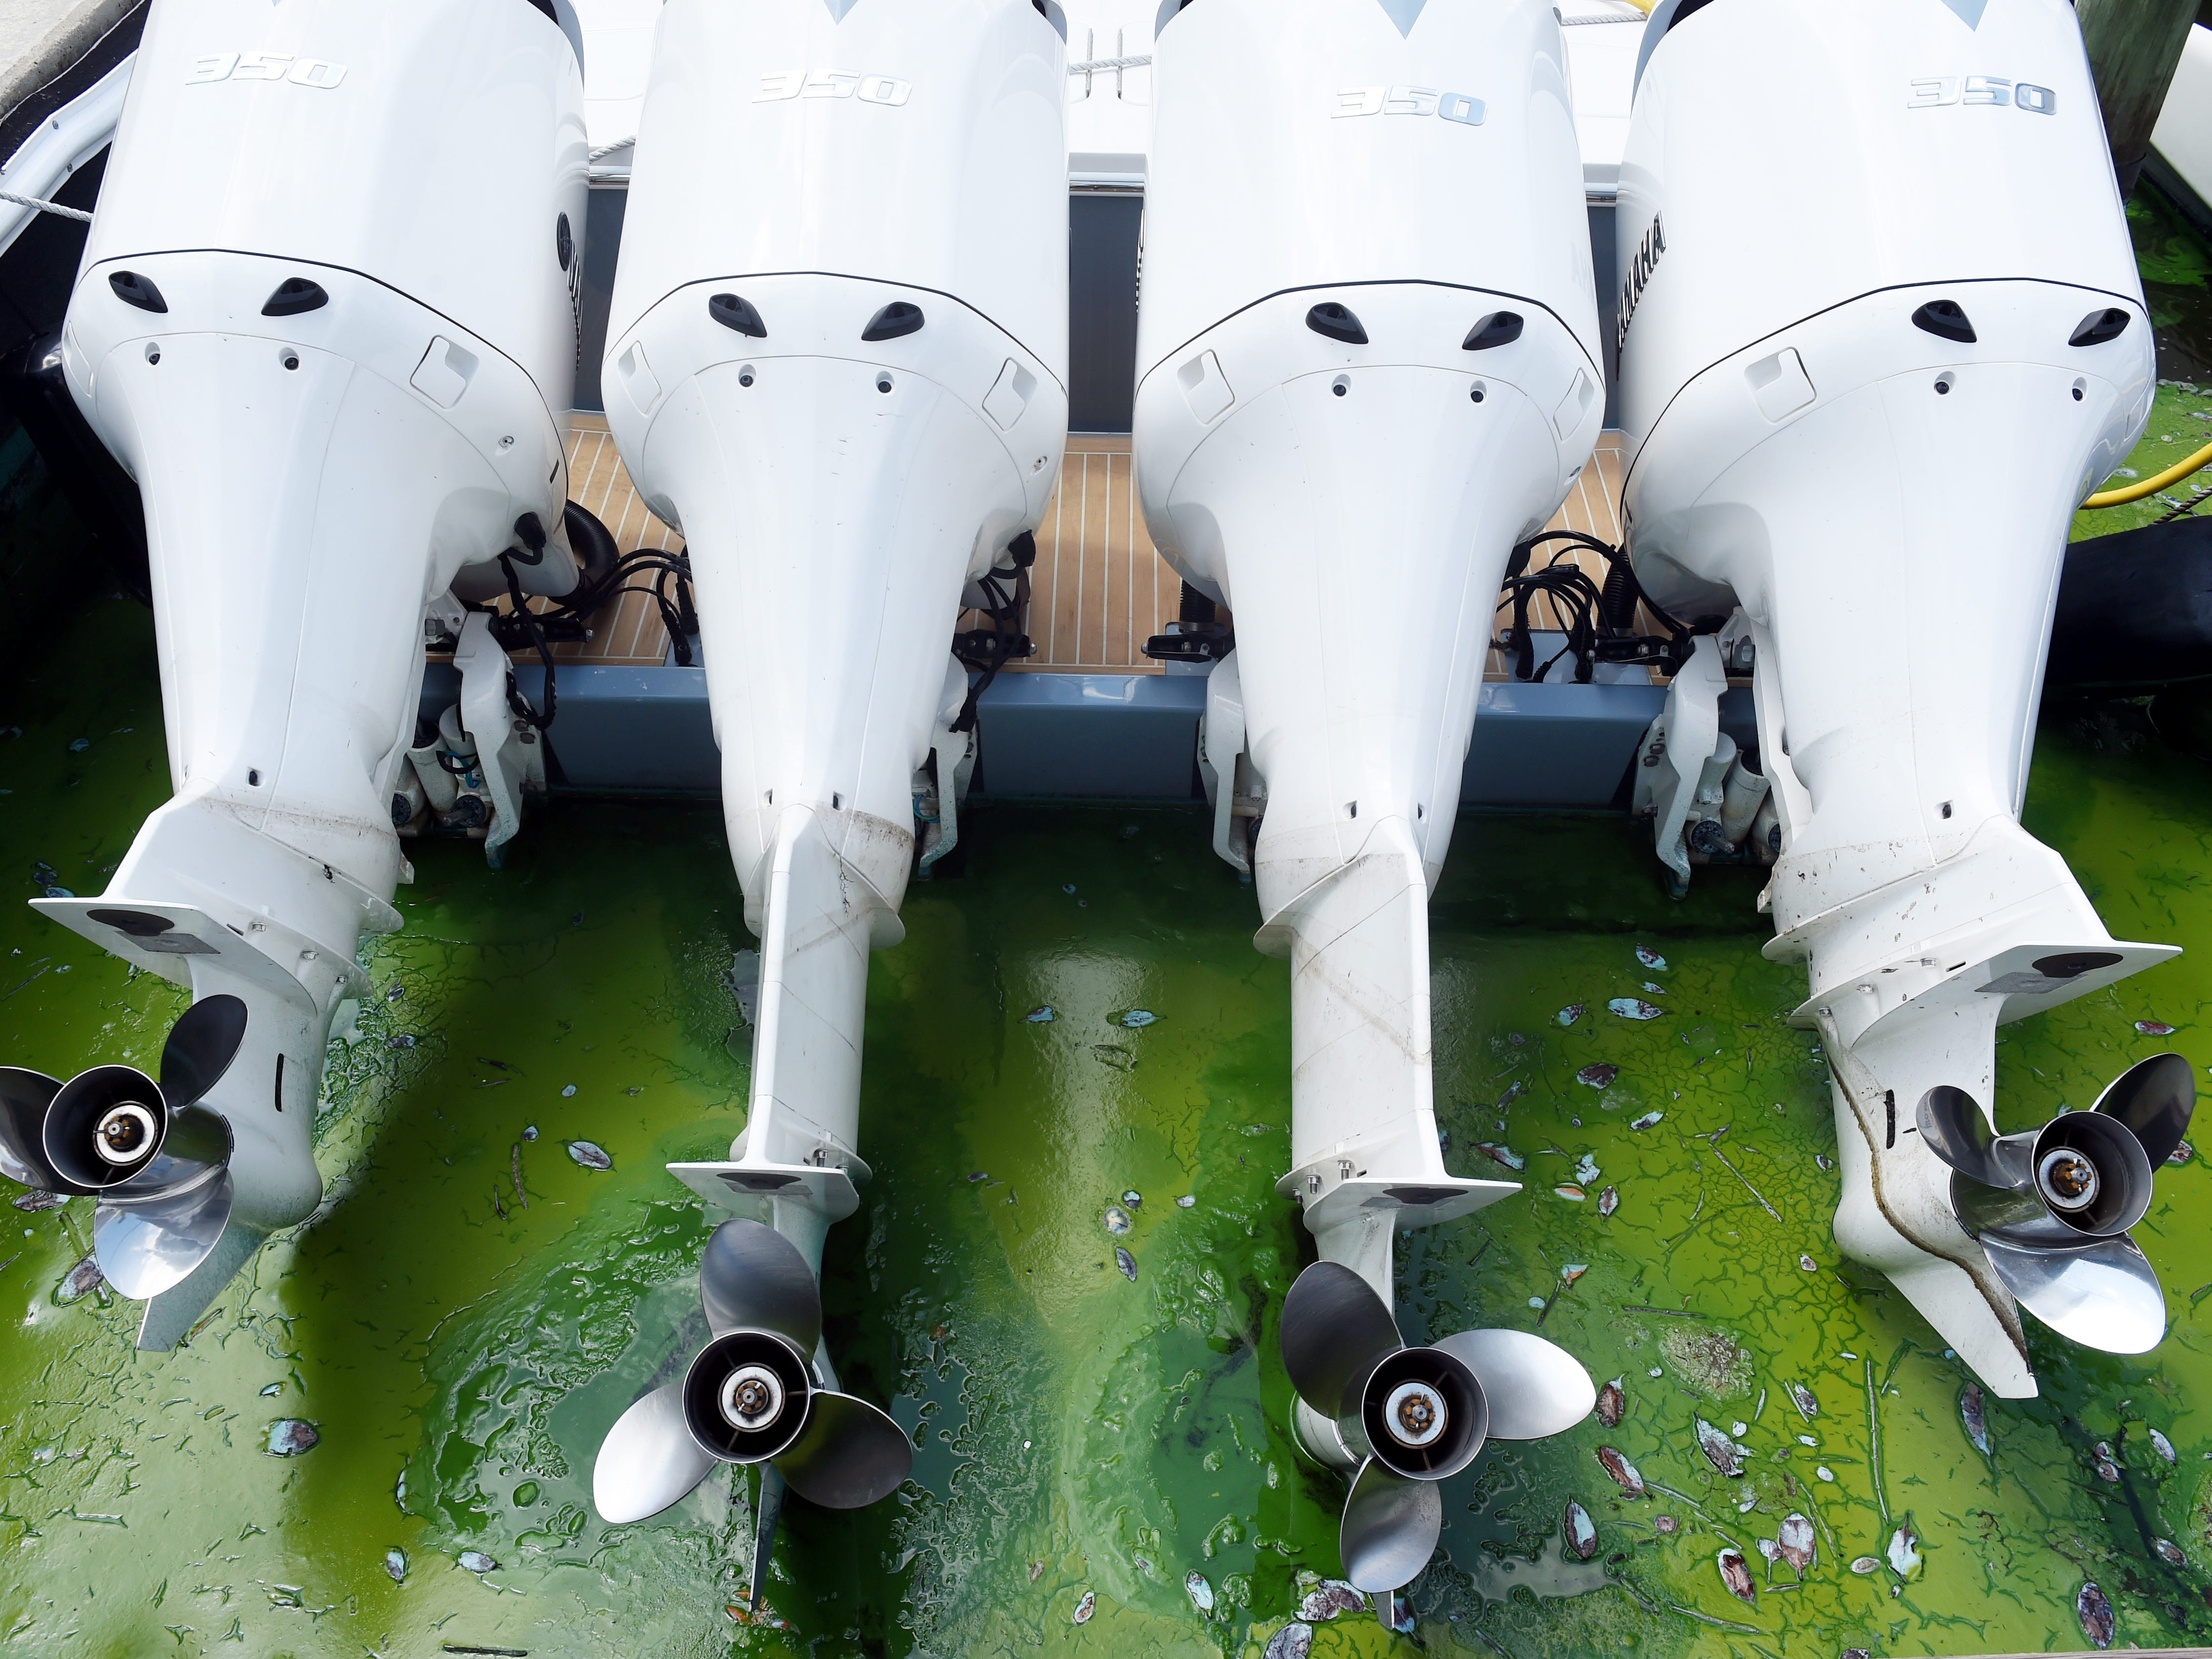 """A thick layer of blue-green algae floats through the boat slips at Sovereign Yacht Sales in Stuart on Thursday, July 26, 2018. Employees a re now being asked to wear ventilated masks when working outside. """"We don't want them breathing in that bad stuff,"""" said Tom Cubr, a Sovereign yacht broker. """"It's harmful, and we've got to take care of our employees."""""""